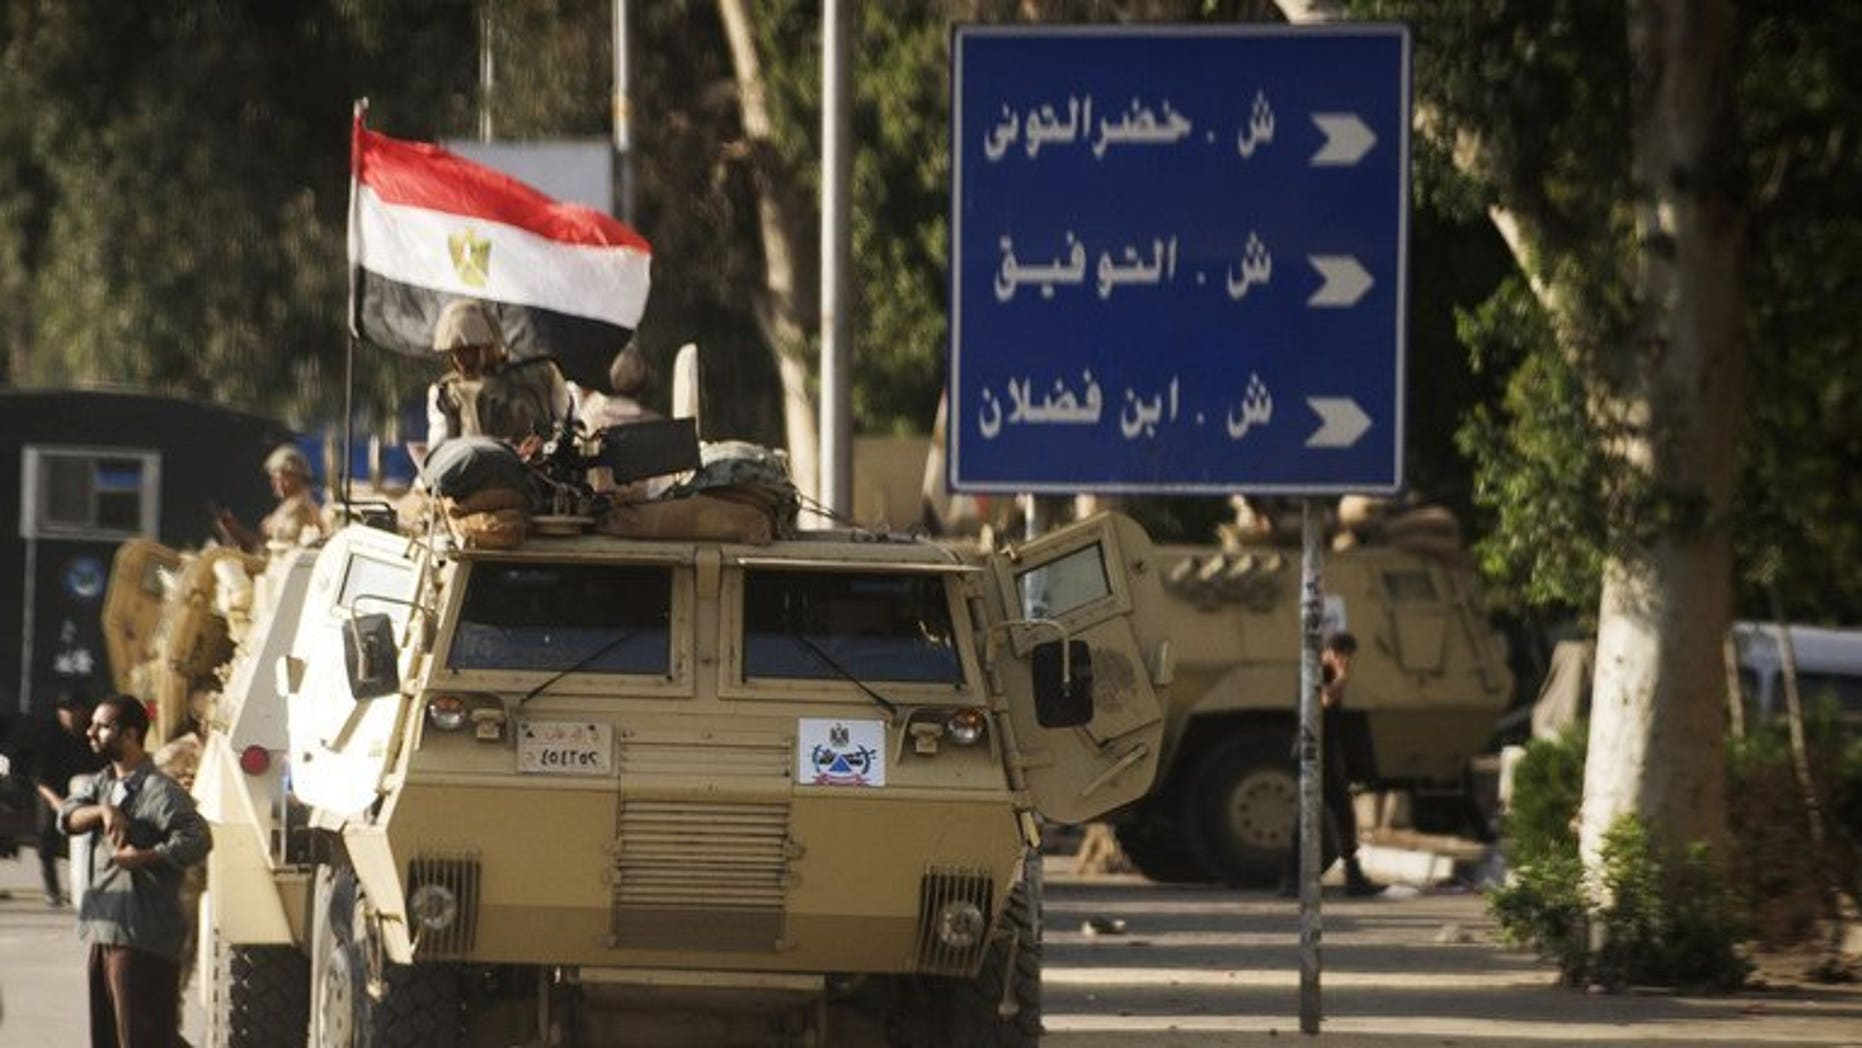 Egyptian troops and police stormed the village of Kerdassah near Cairo Thursday in the latest crackdown on militants. File picture shows Egyptian troops in Cairo on September 3, 2013.